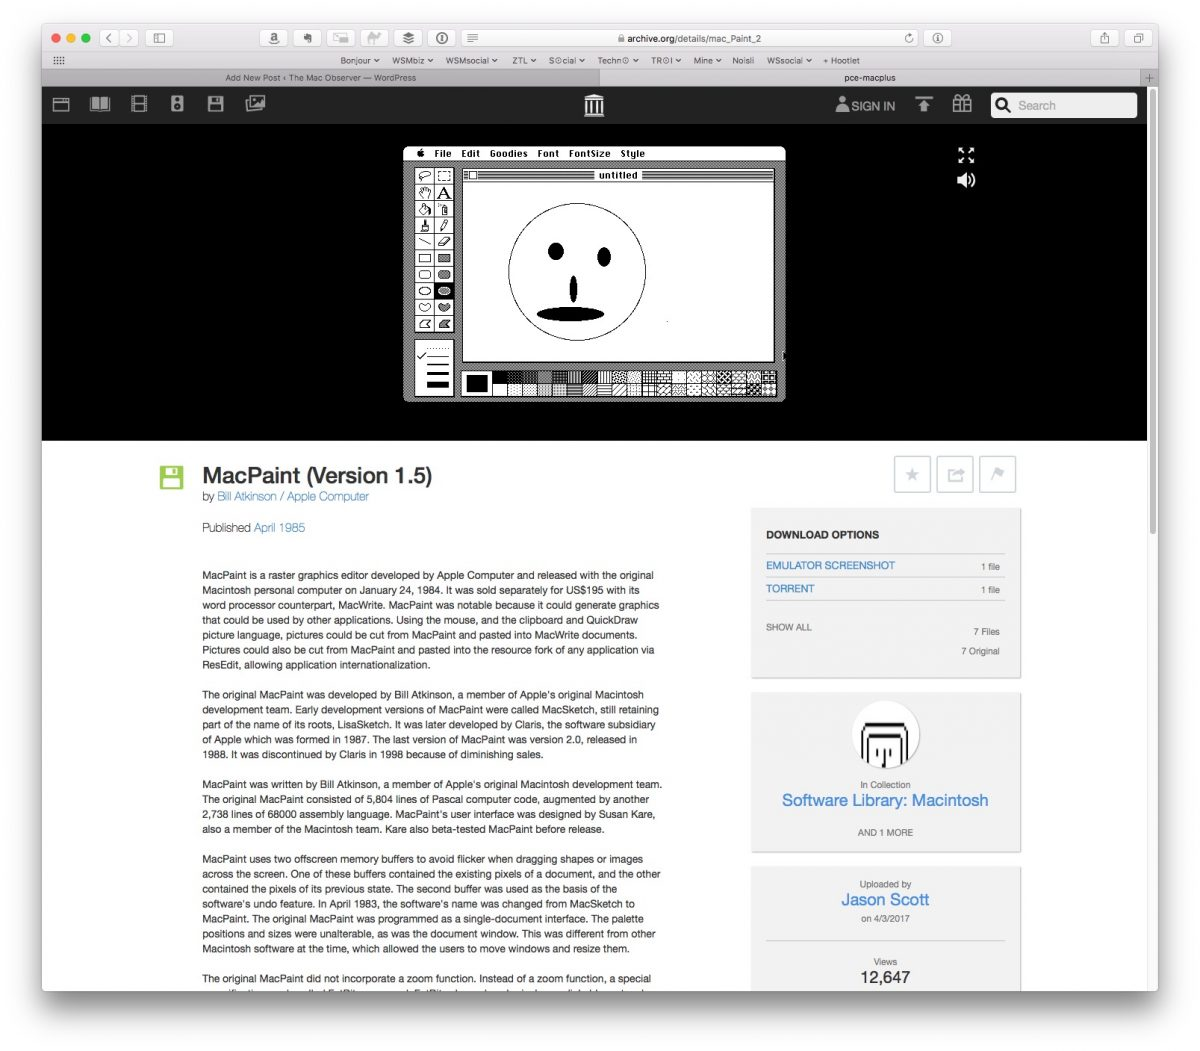 What a blast—the original MacPaint in all its monochromatic glory!